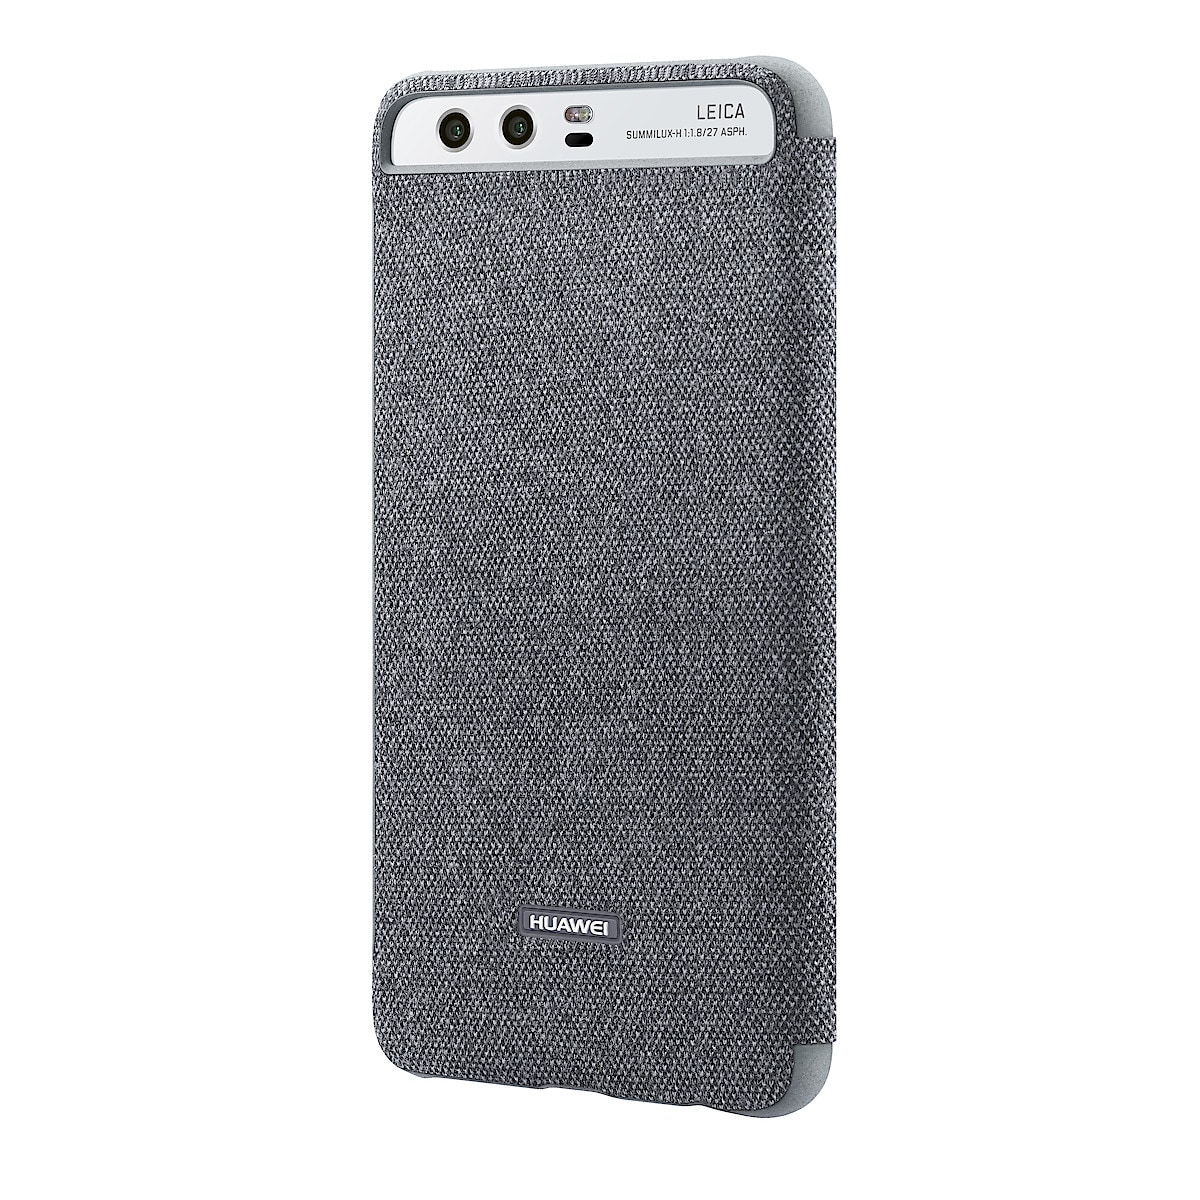 Futteral til Huawei P10 Plus View Cover